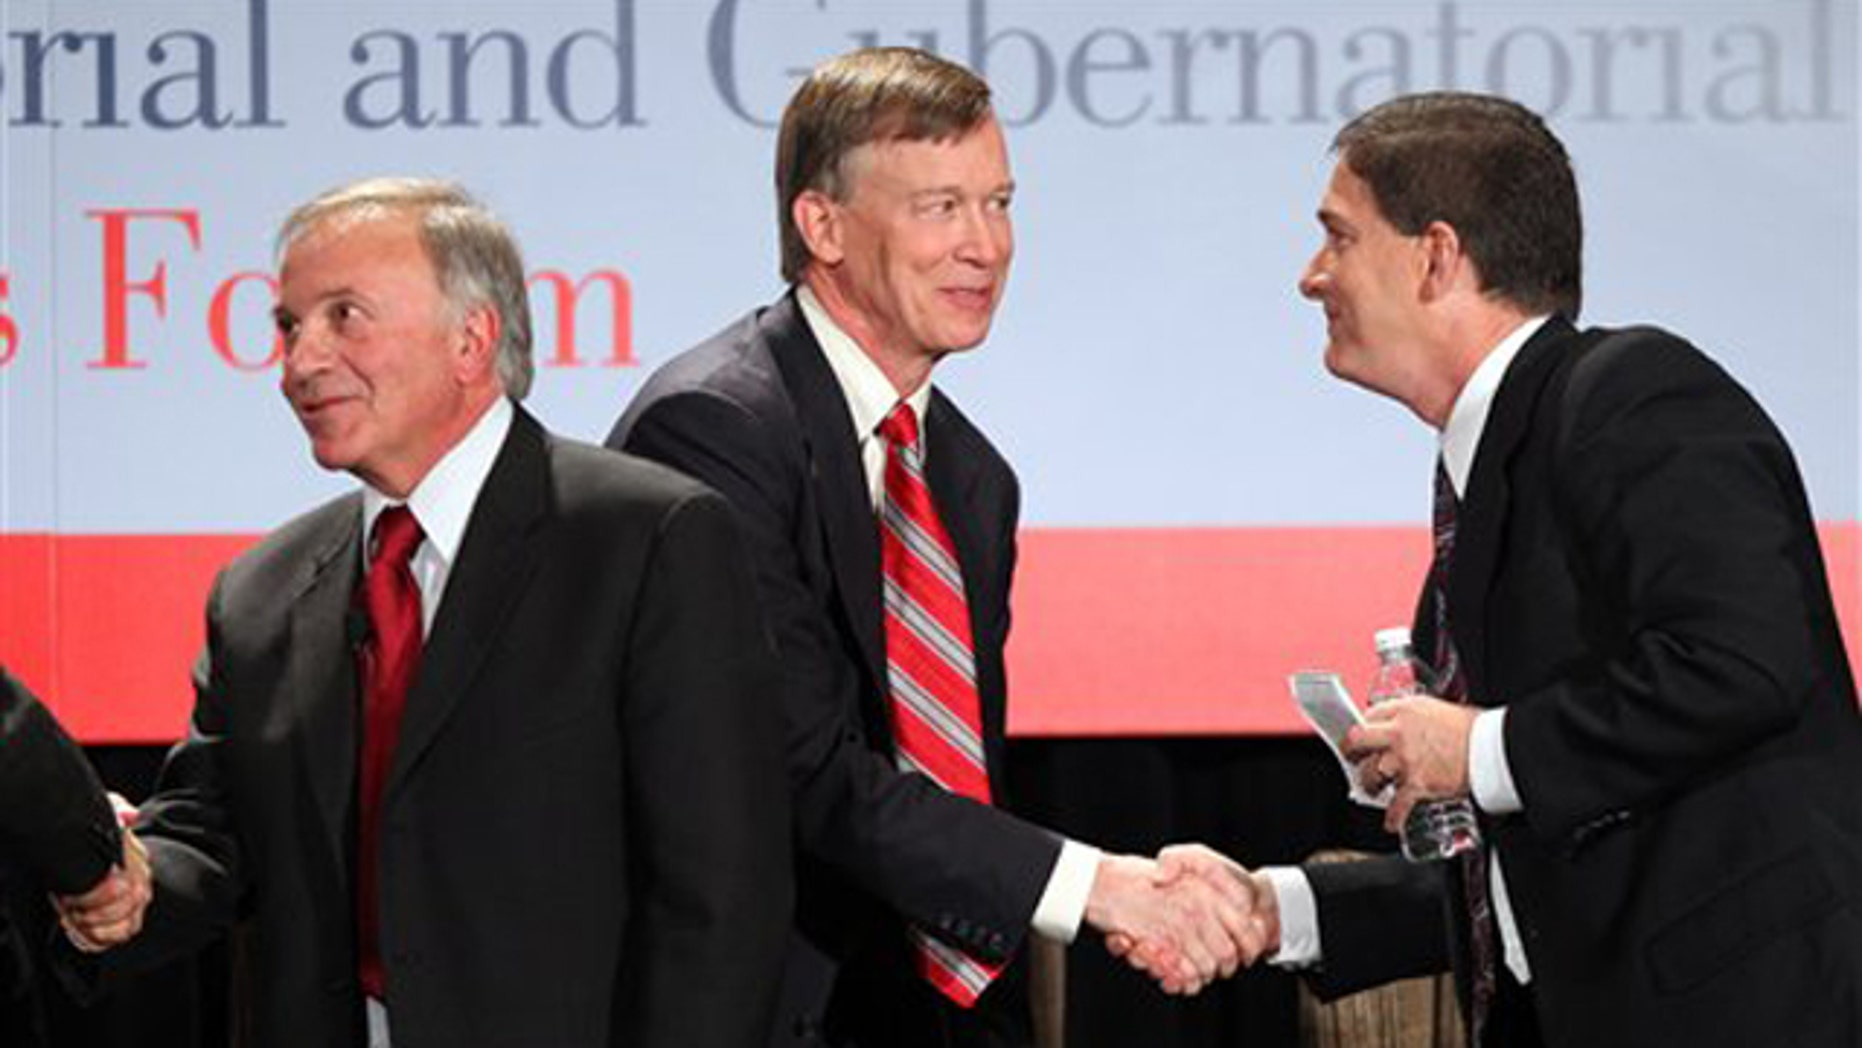 Colorado gubernatorial candidates Tom Tancredo, left, American Constitution Party, Democrat John Hickenlooper, center, and Republican Dan Maes exchange hand shakes after a forum in Denver on Oct. 15. (AP Photo)